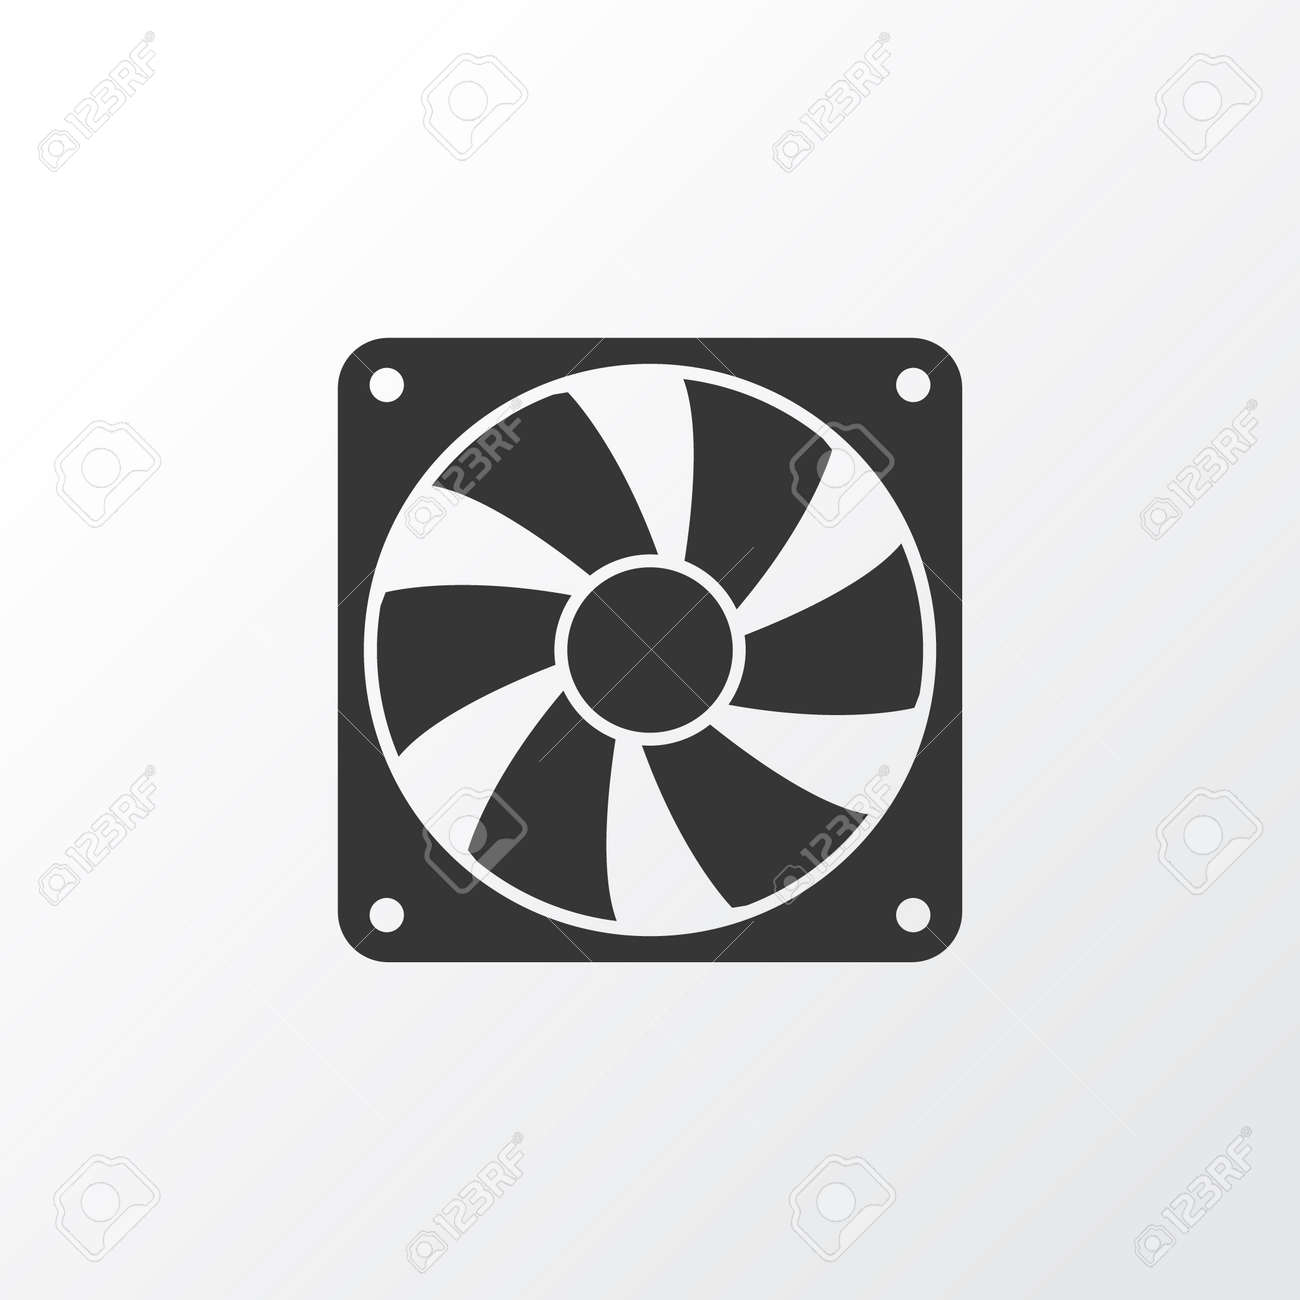 Cooler Icon Symbol. Premium Quality Isolated Fan Element In Trendy Style. - 90357514